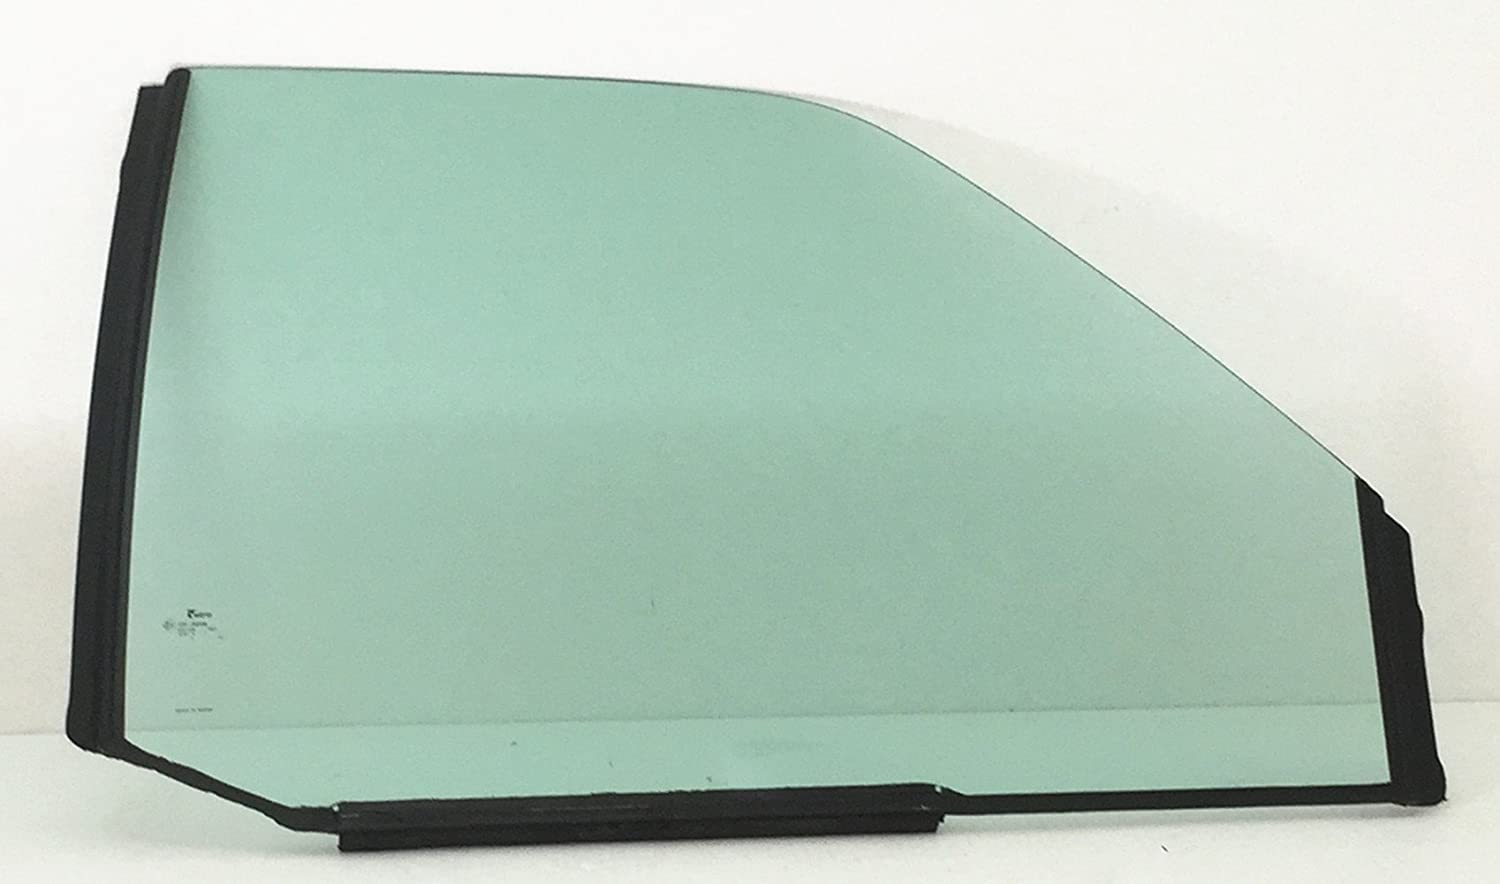 NAGD Passenger//Right Side Front Door Window Replacement Glass for 1993-1998 GMC Pickup//Chevrolet Pickup C1500//K1500 1993-2000 GMC Pickup//Chevrolet Pickup C2500//C3500//K2500//K3500